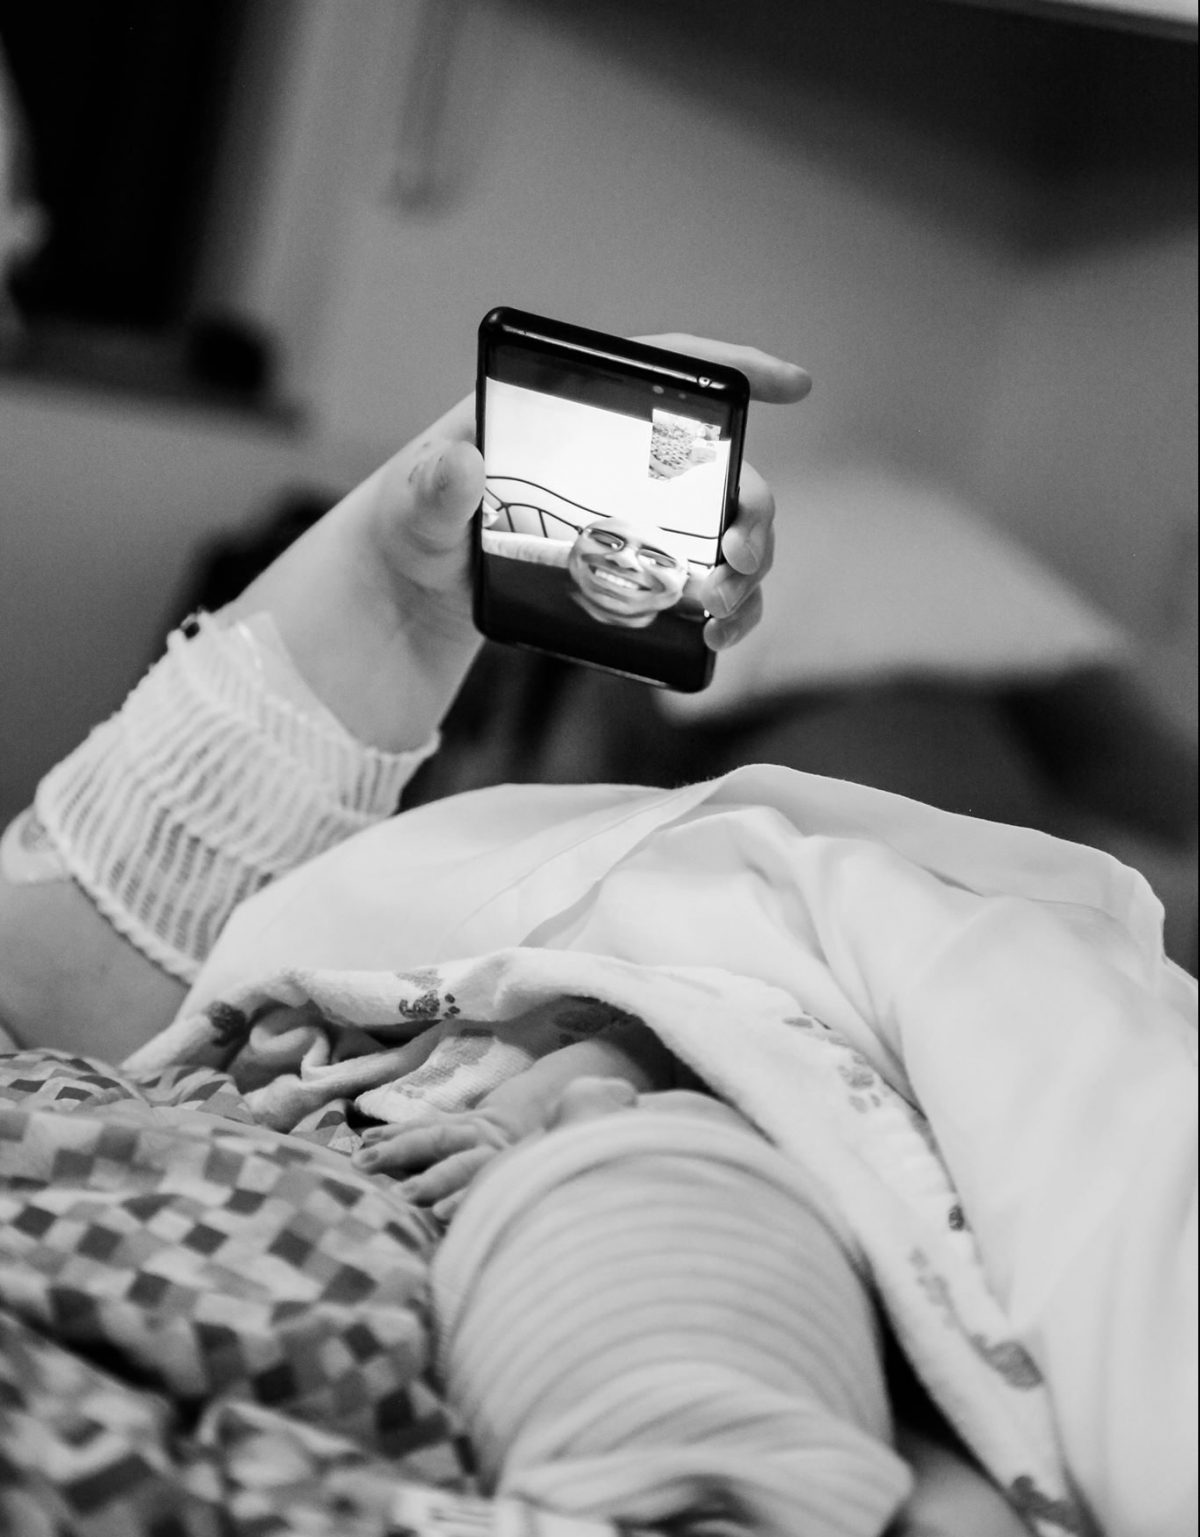 New moms lays newborn on her chest as she holds a cell phone in her other hand to video chat with baby's dad